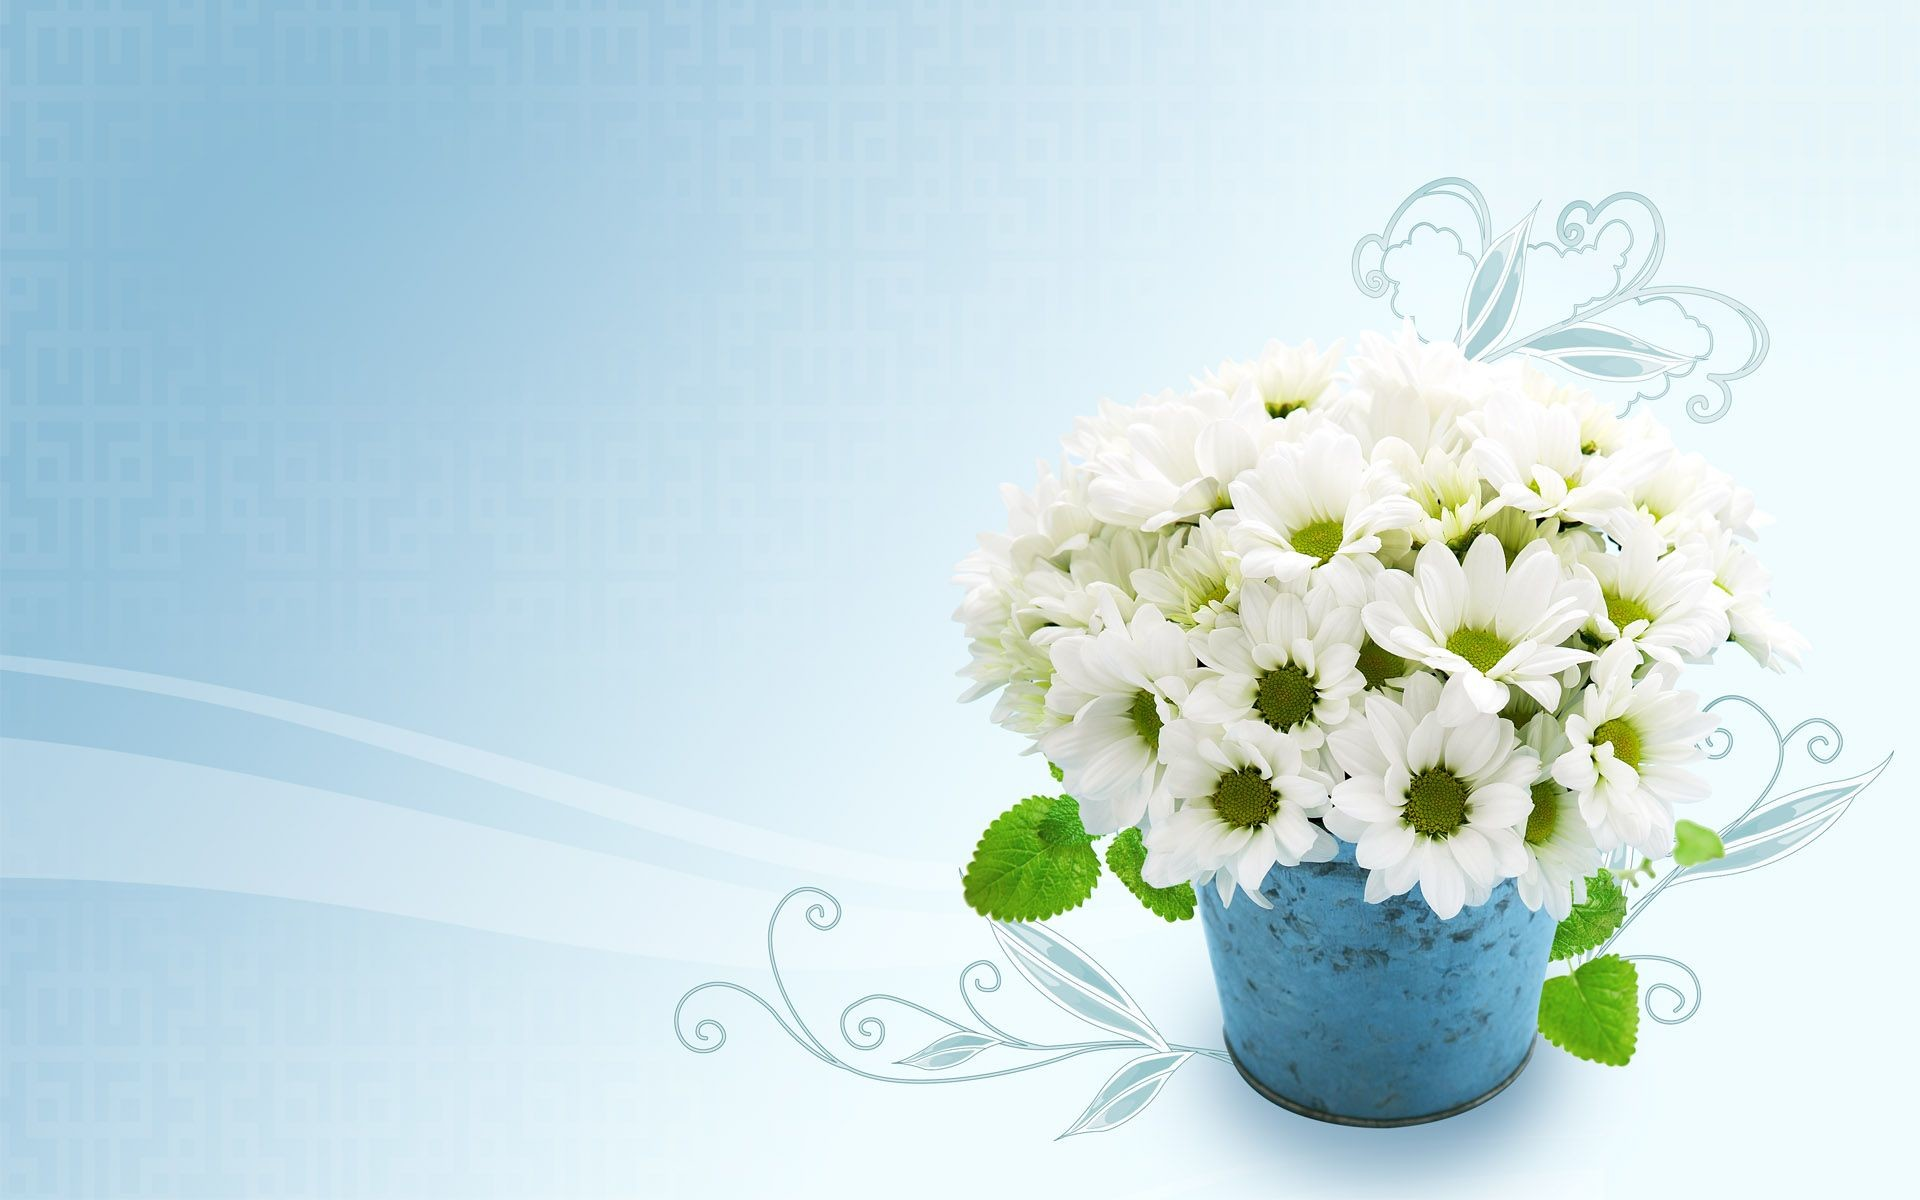 Blue Wallpaper with White Flowers (45+ images)